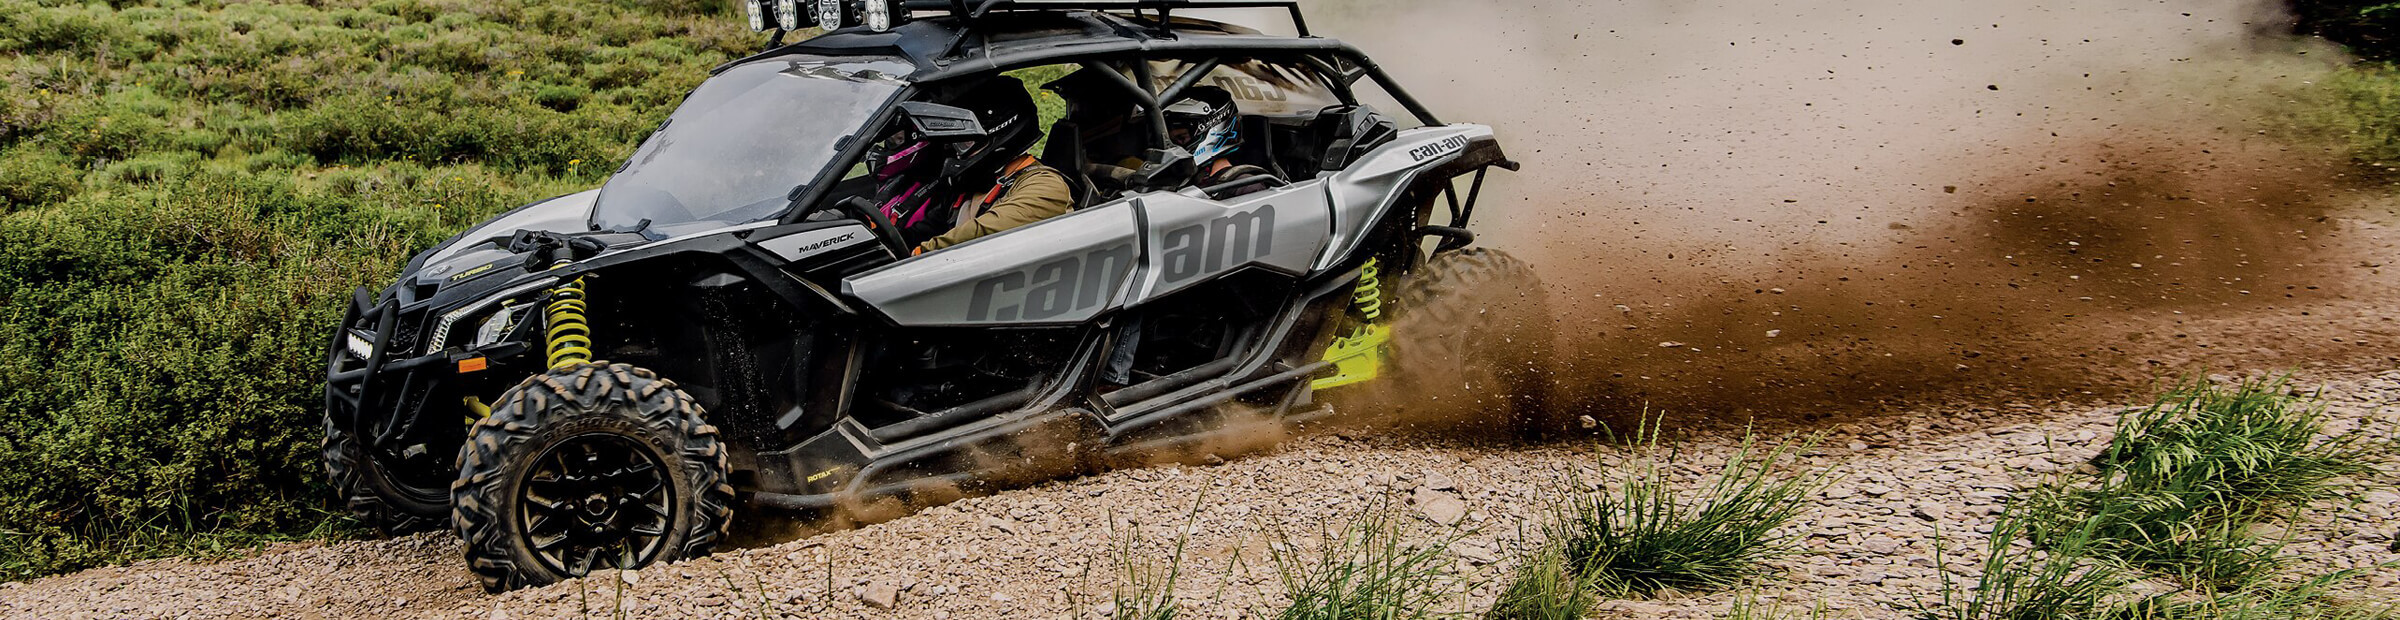 2020 Can-Am side-by-side vehicles